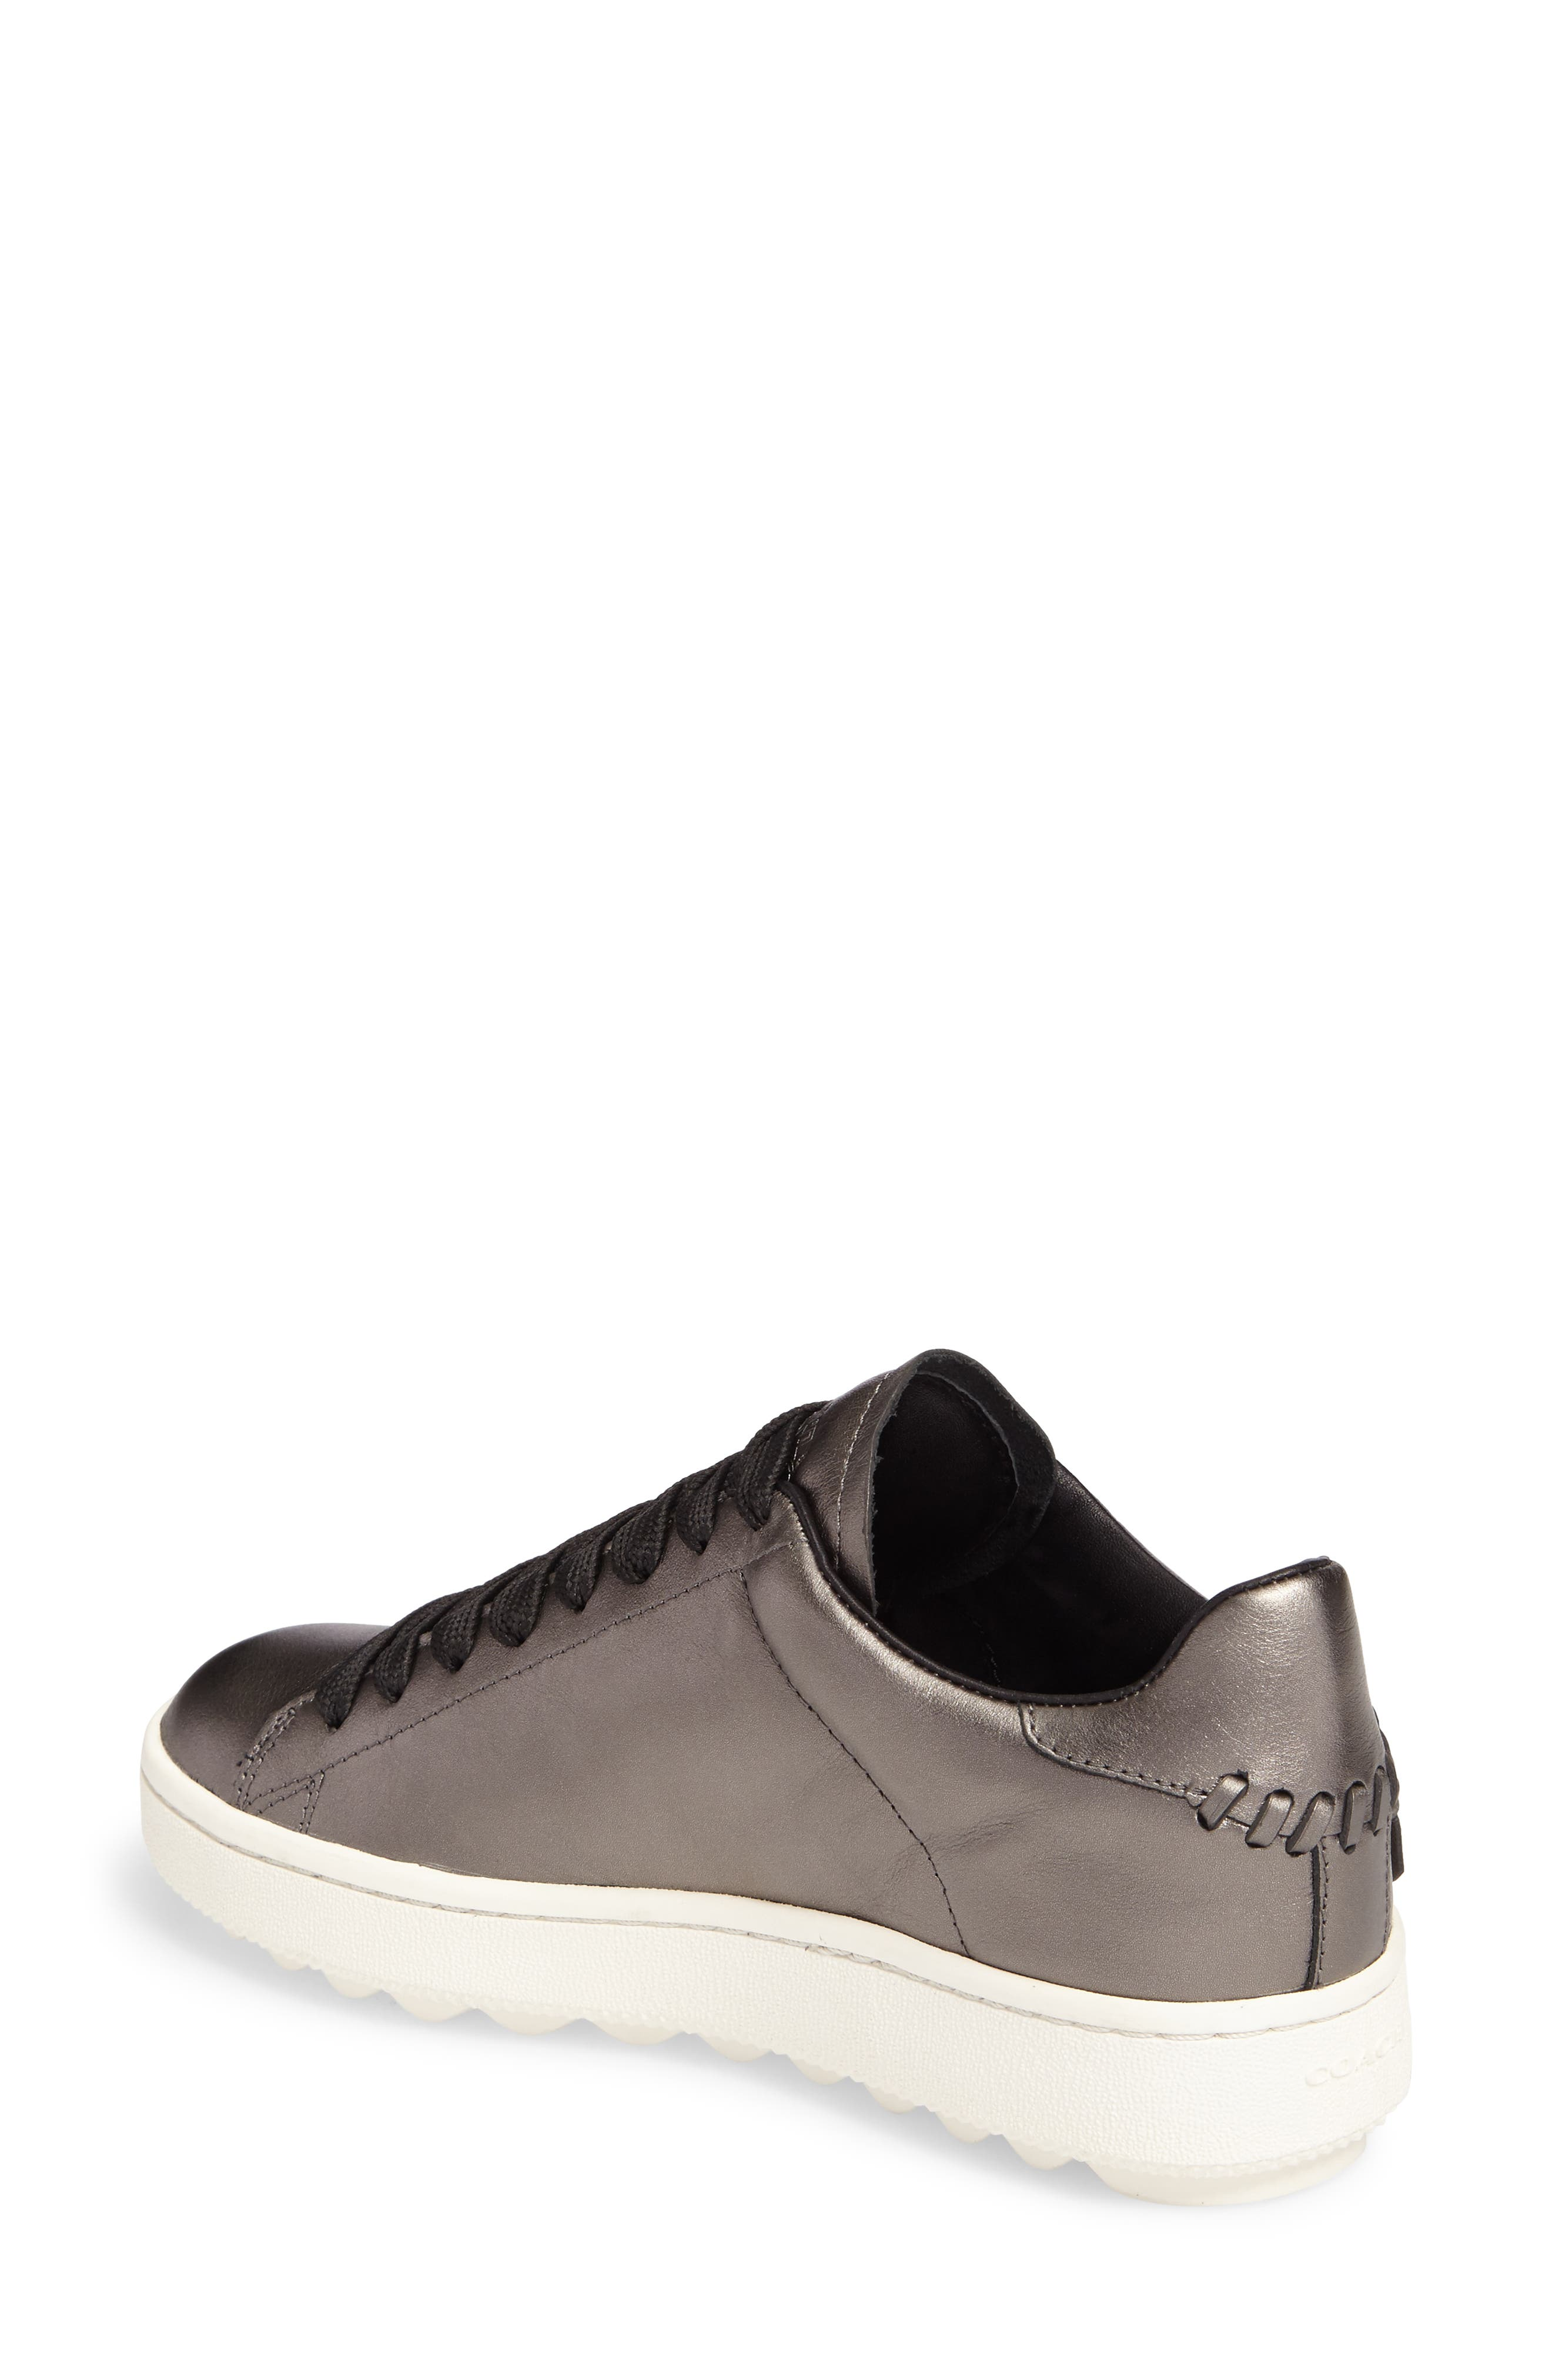 Tea Rose Metallic Sneaker,                             Alternate thumbnail 2, color,                             Gunmetal Leather